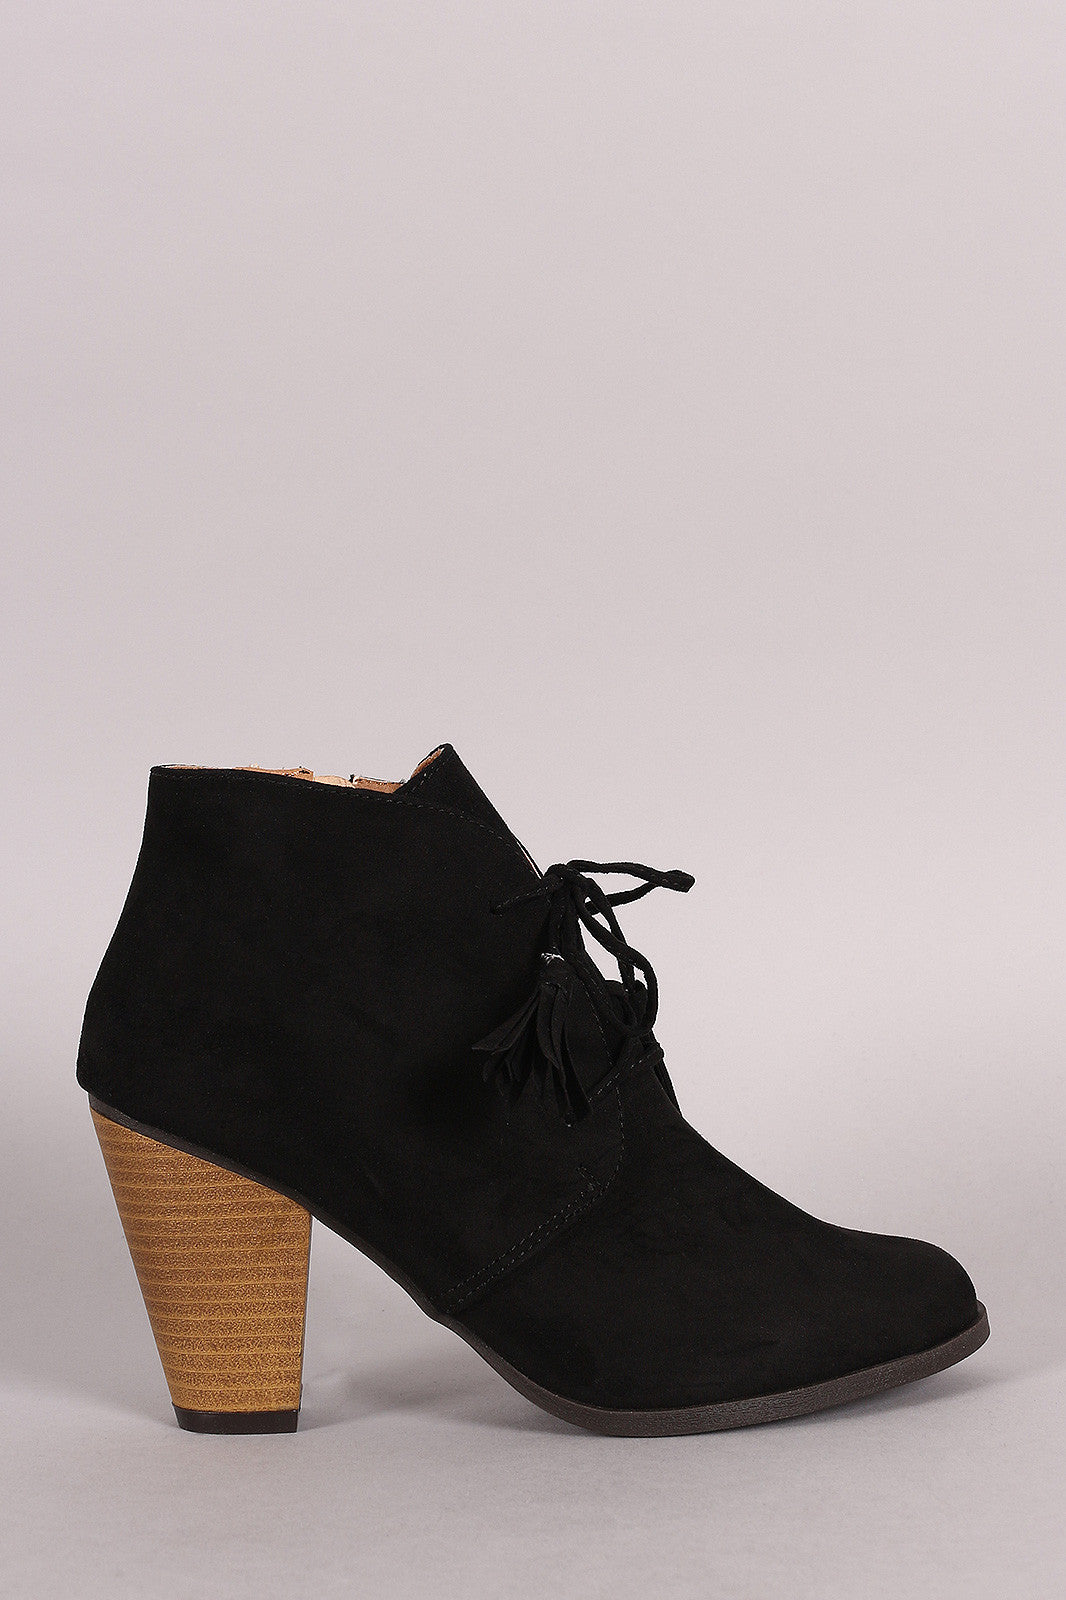 Qupid Suede Western Cowgirl Lace Up Ankle Boots - Thick 'N' Curvy Shop - 1